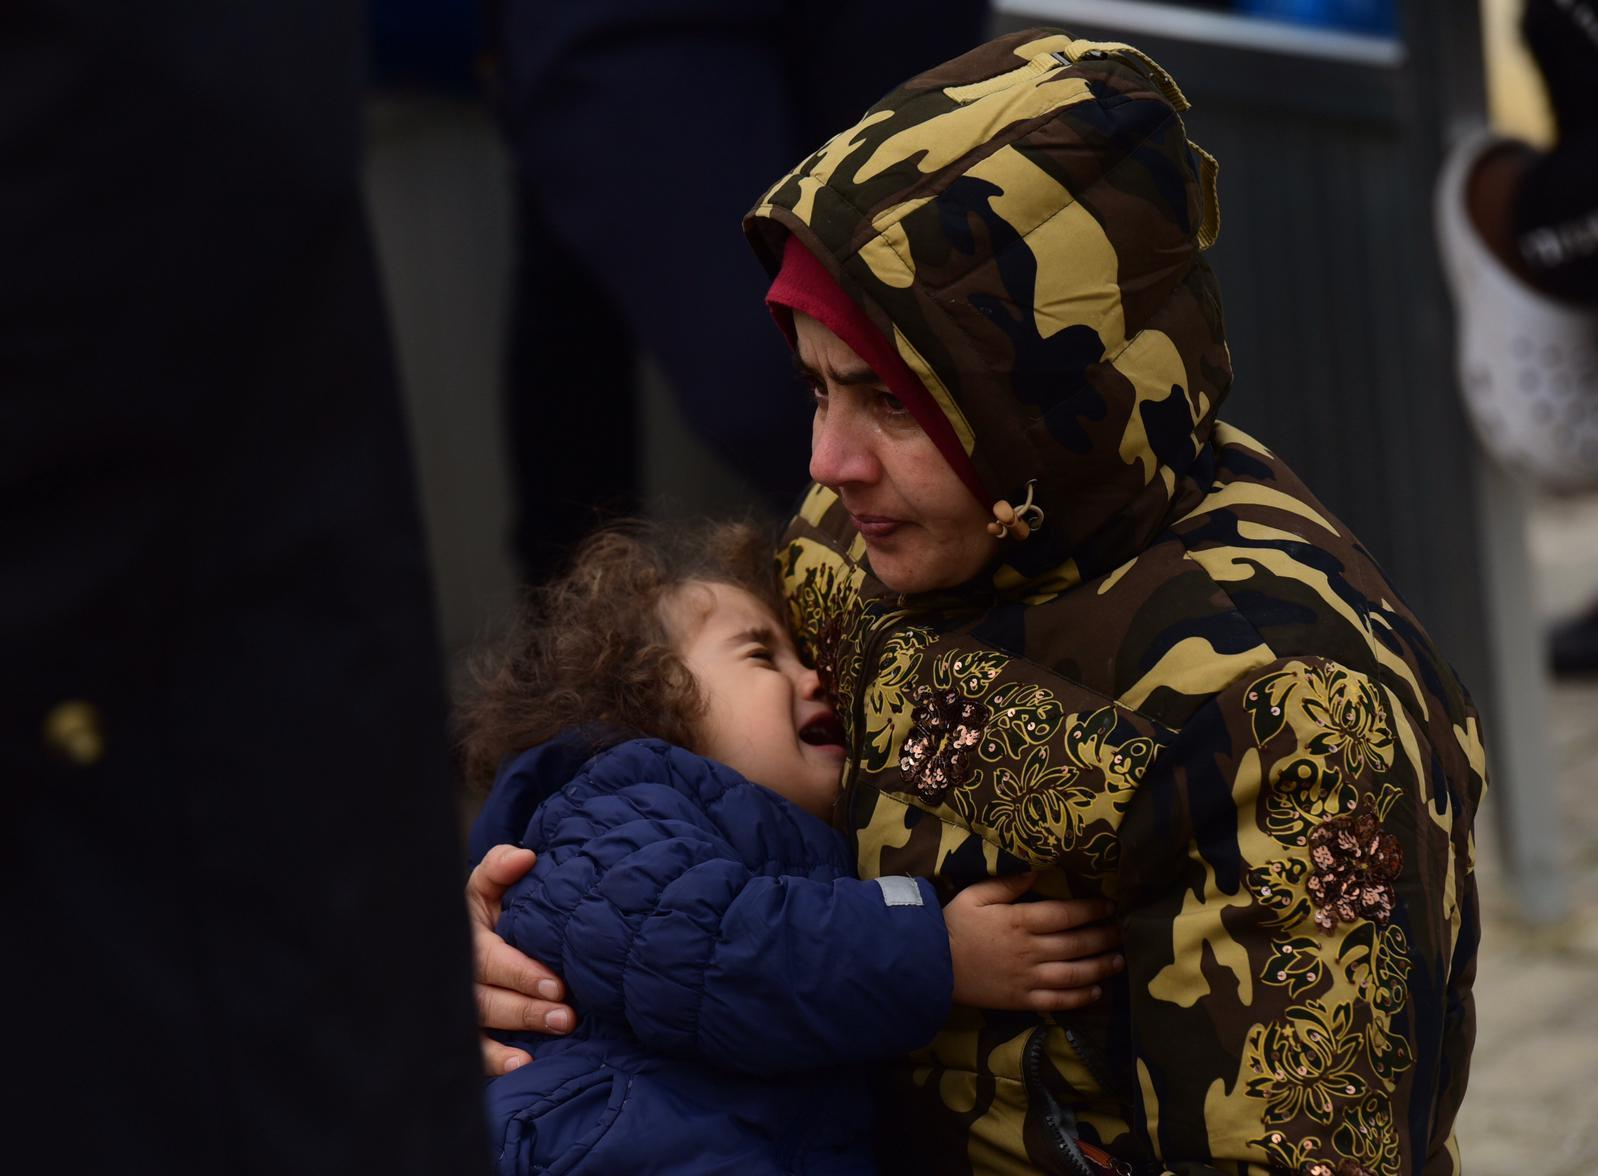 A tearful woman holds a crying child outside the Marsa centre following a fire on Wednesday January 8. Photo: Mark Zammit Cordina